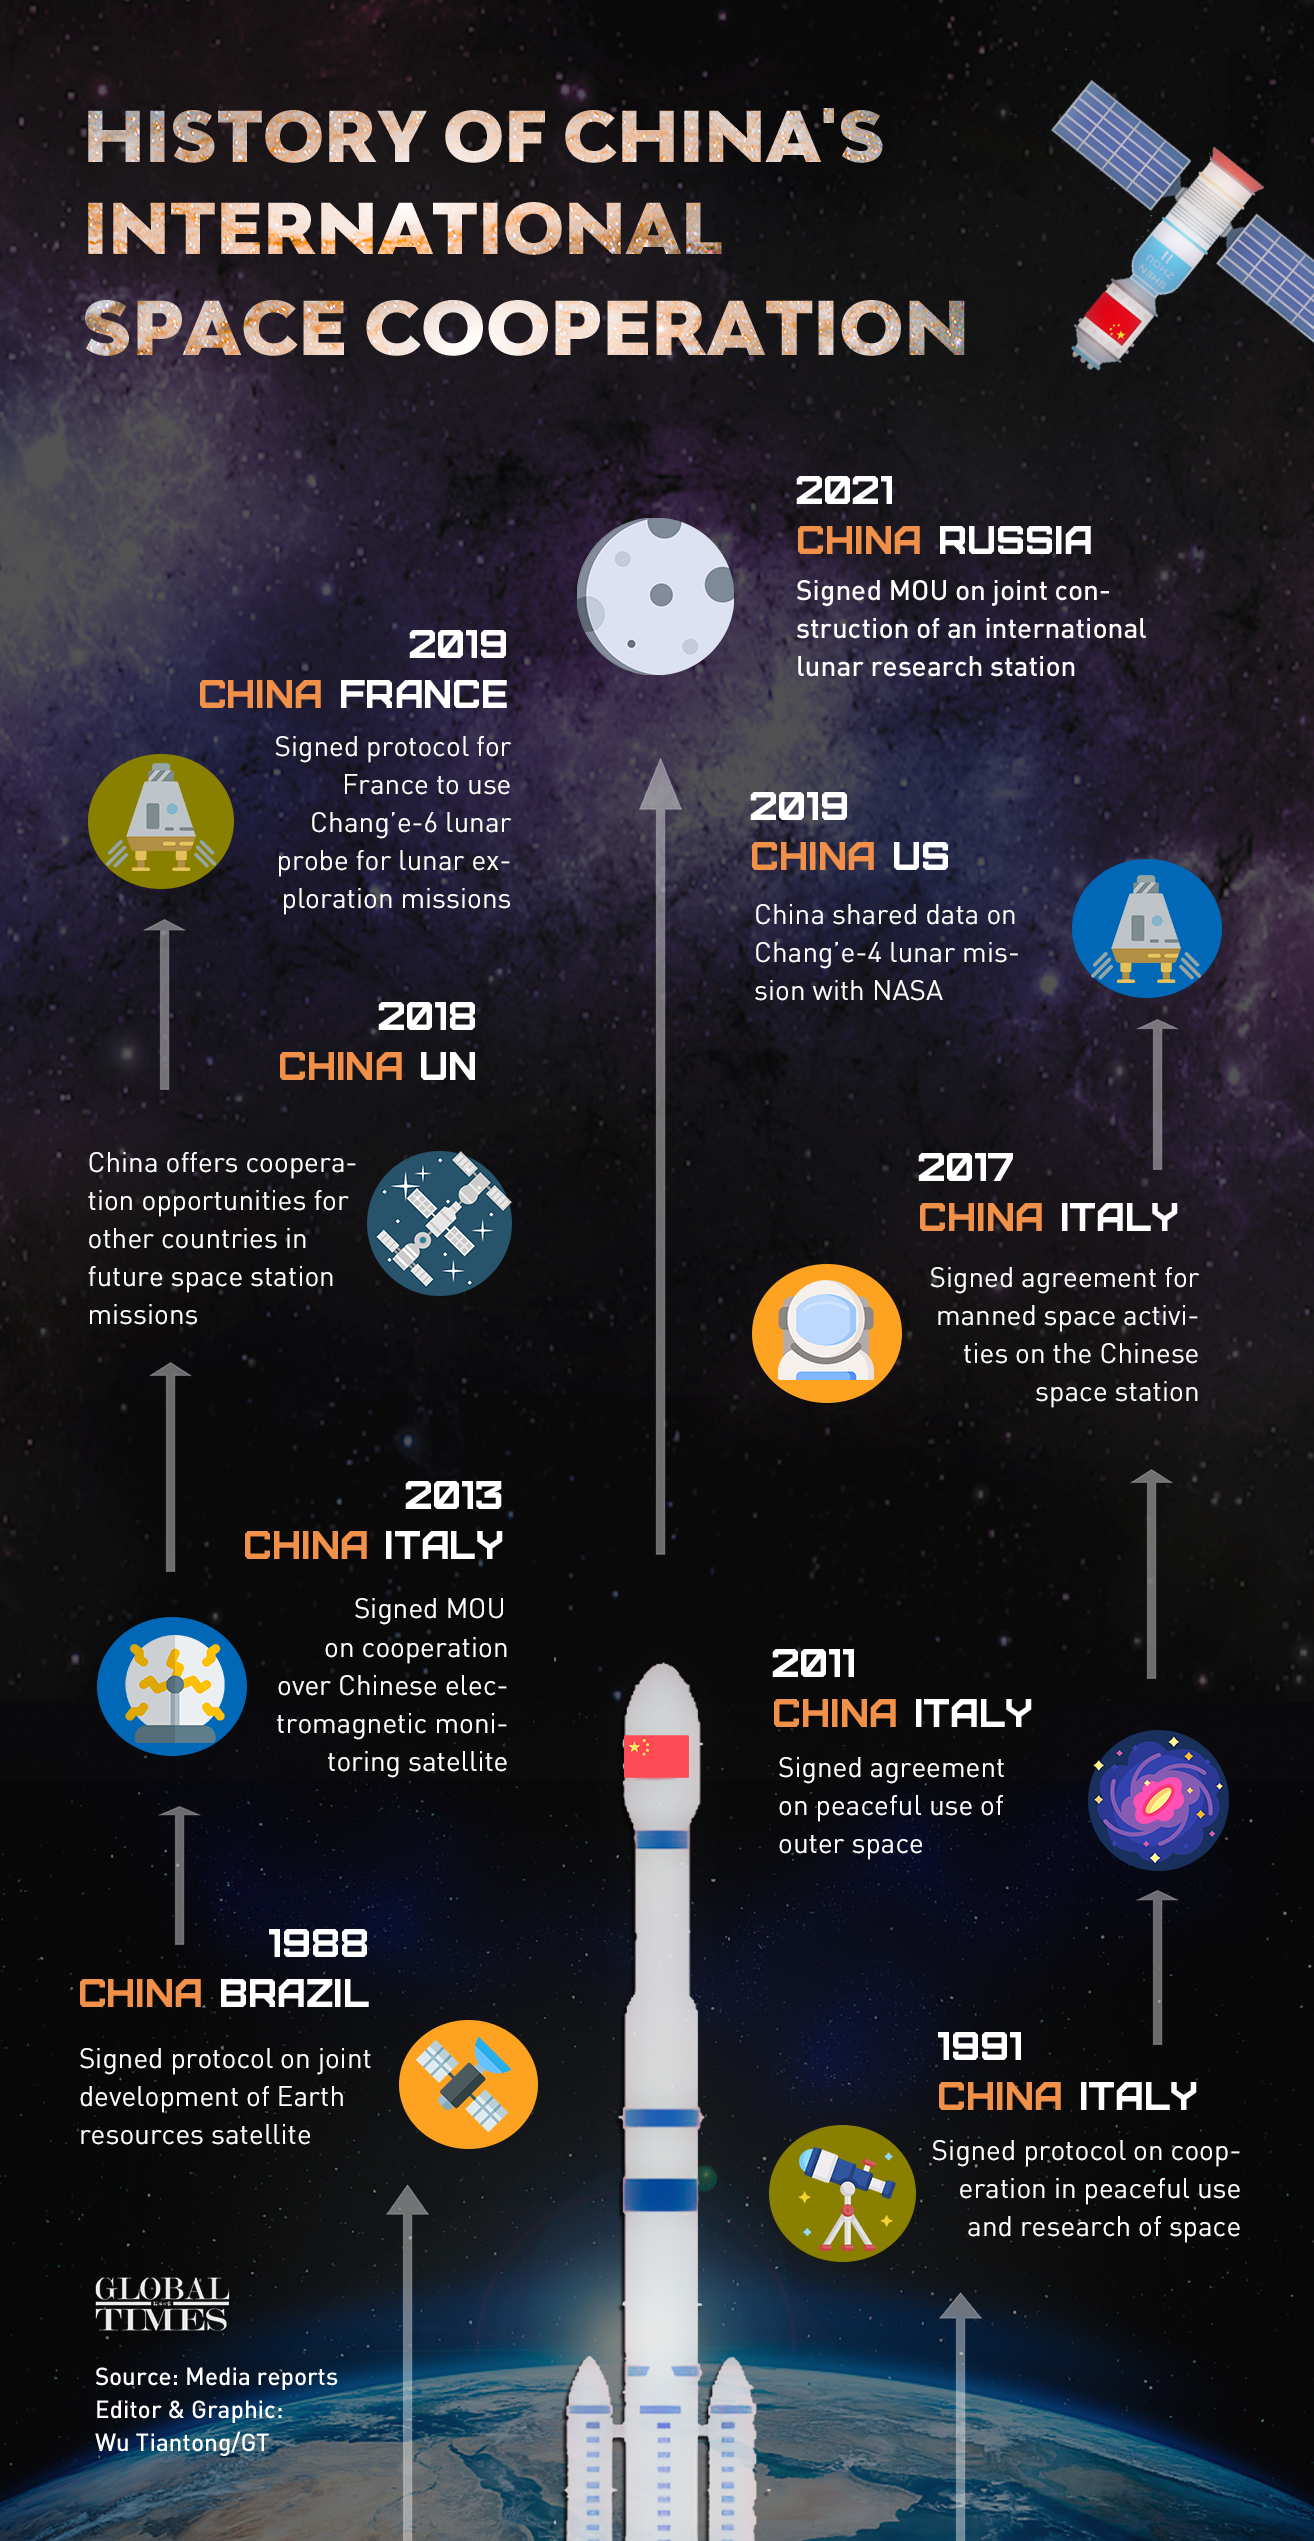 Let's explore space together! From the 1980s to 2021, China has never stopped working with the other countries to explore the mysteries of space. For more info: